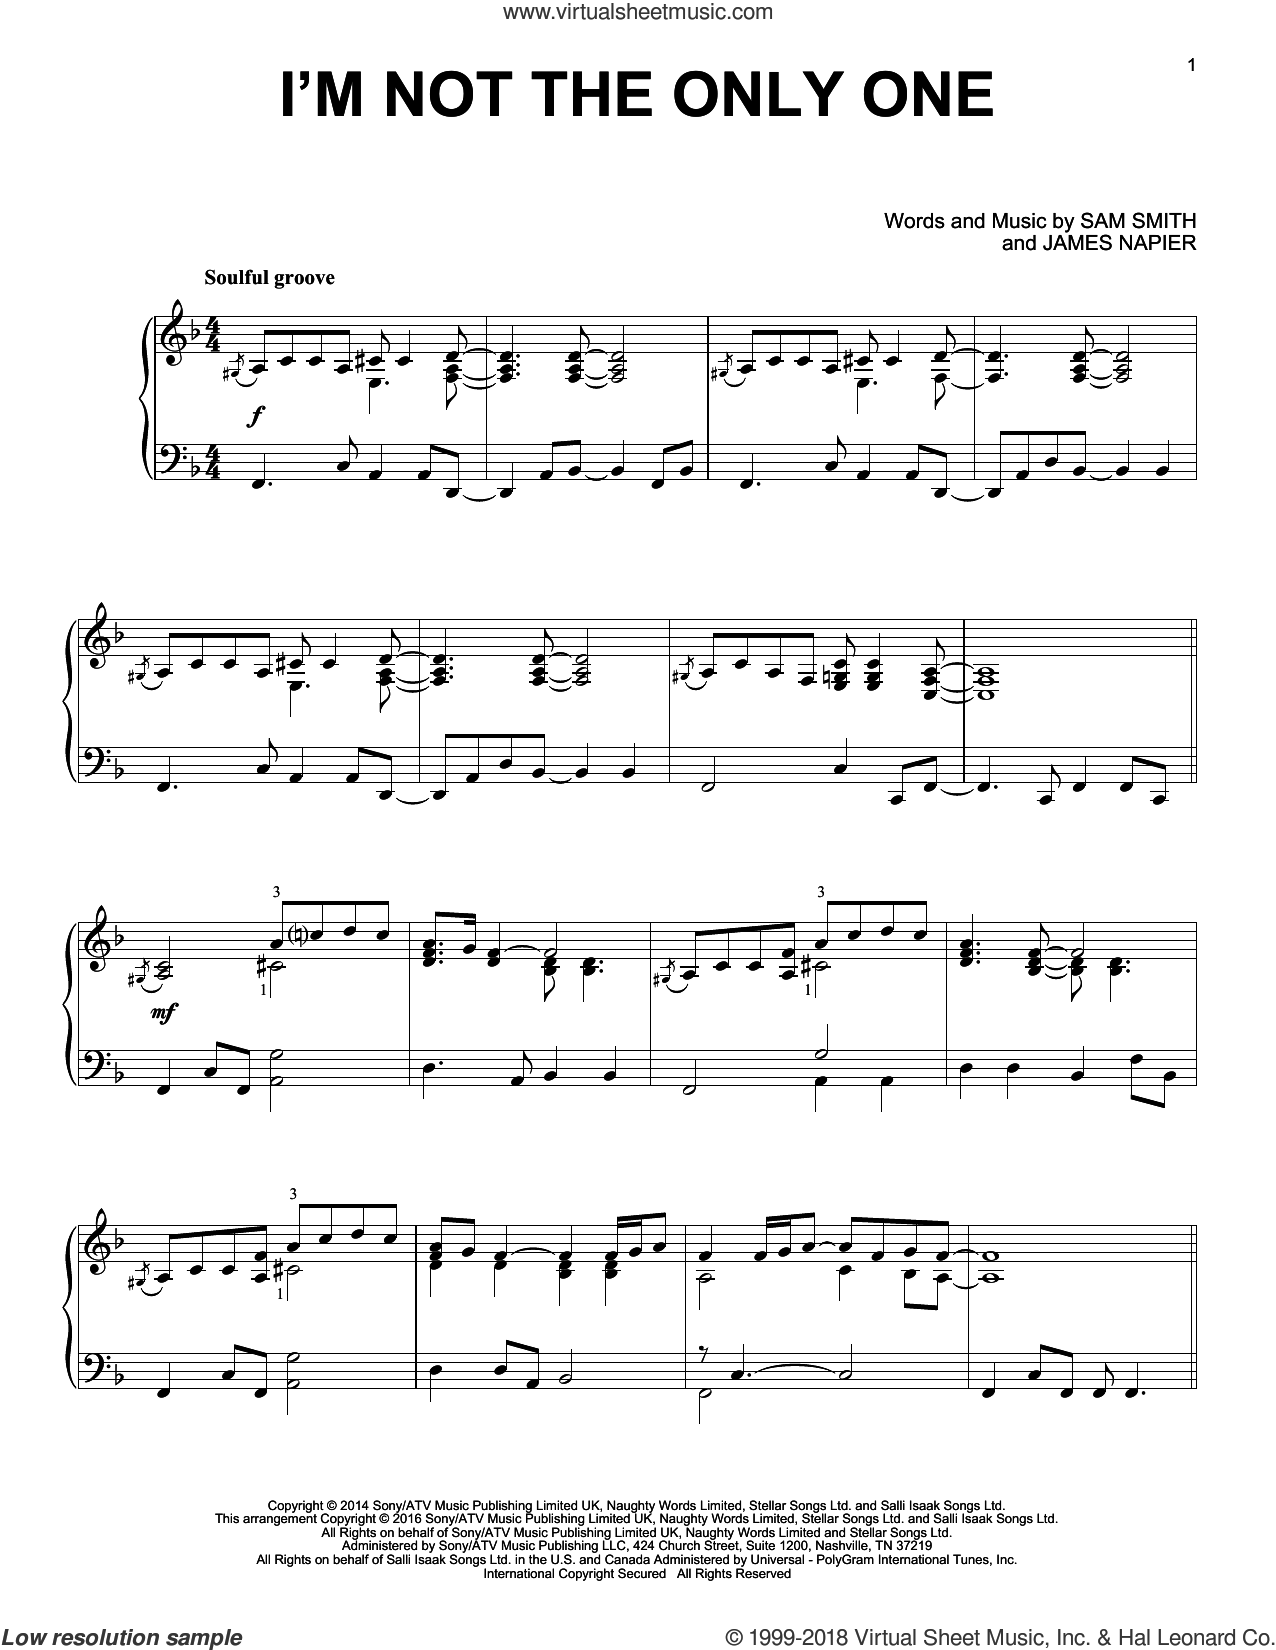 I'm Not The Only One sheet music for piano solo by Sam Smith and James Napier, intermediate skill level